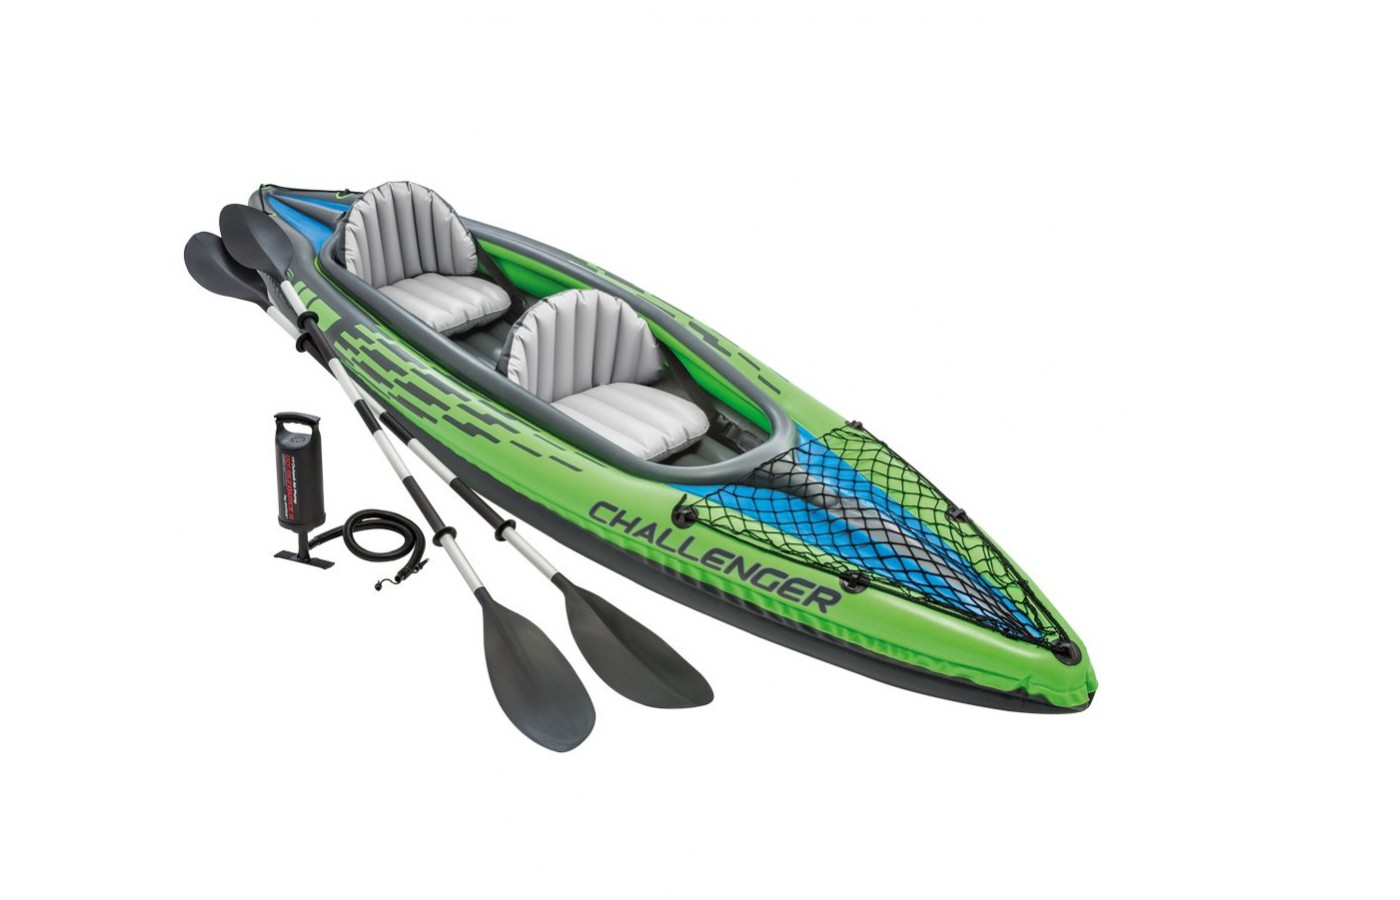 The Intex Challenger K2 Kayak is a fully inflatable 2-person kayak for easy storage.